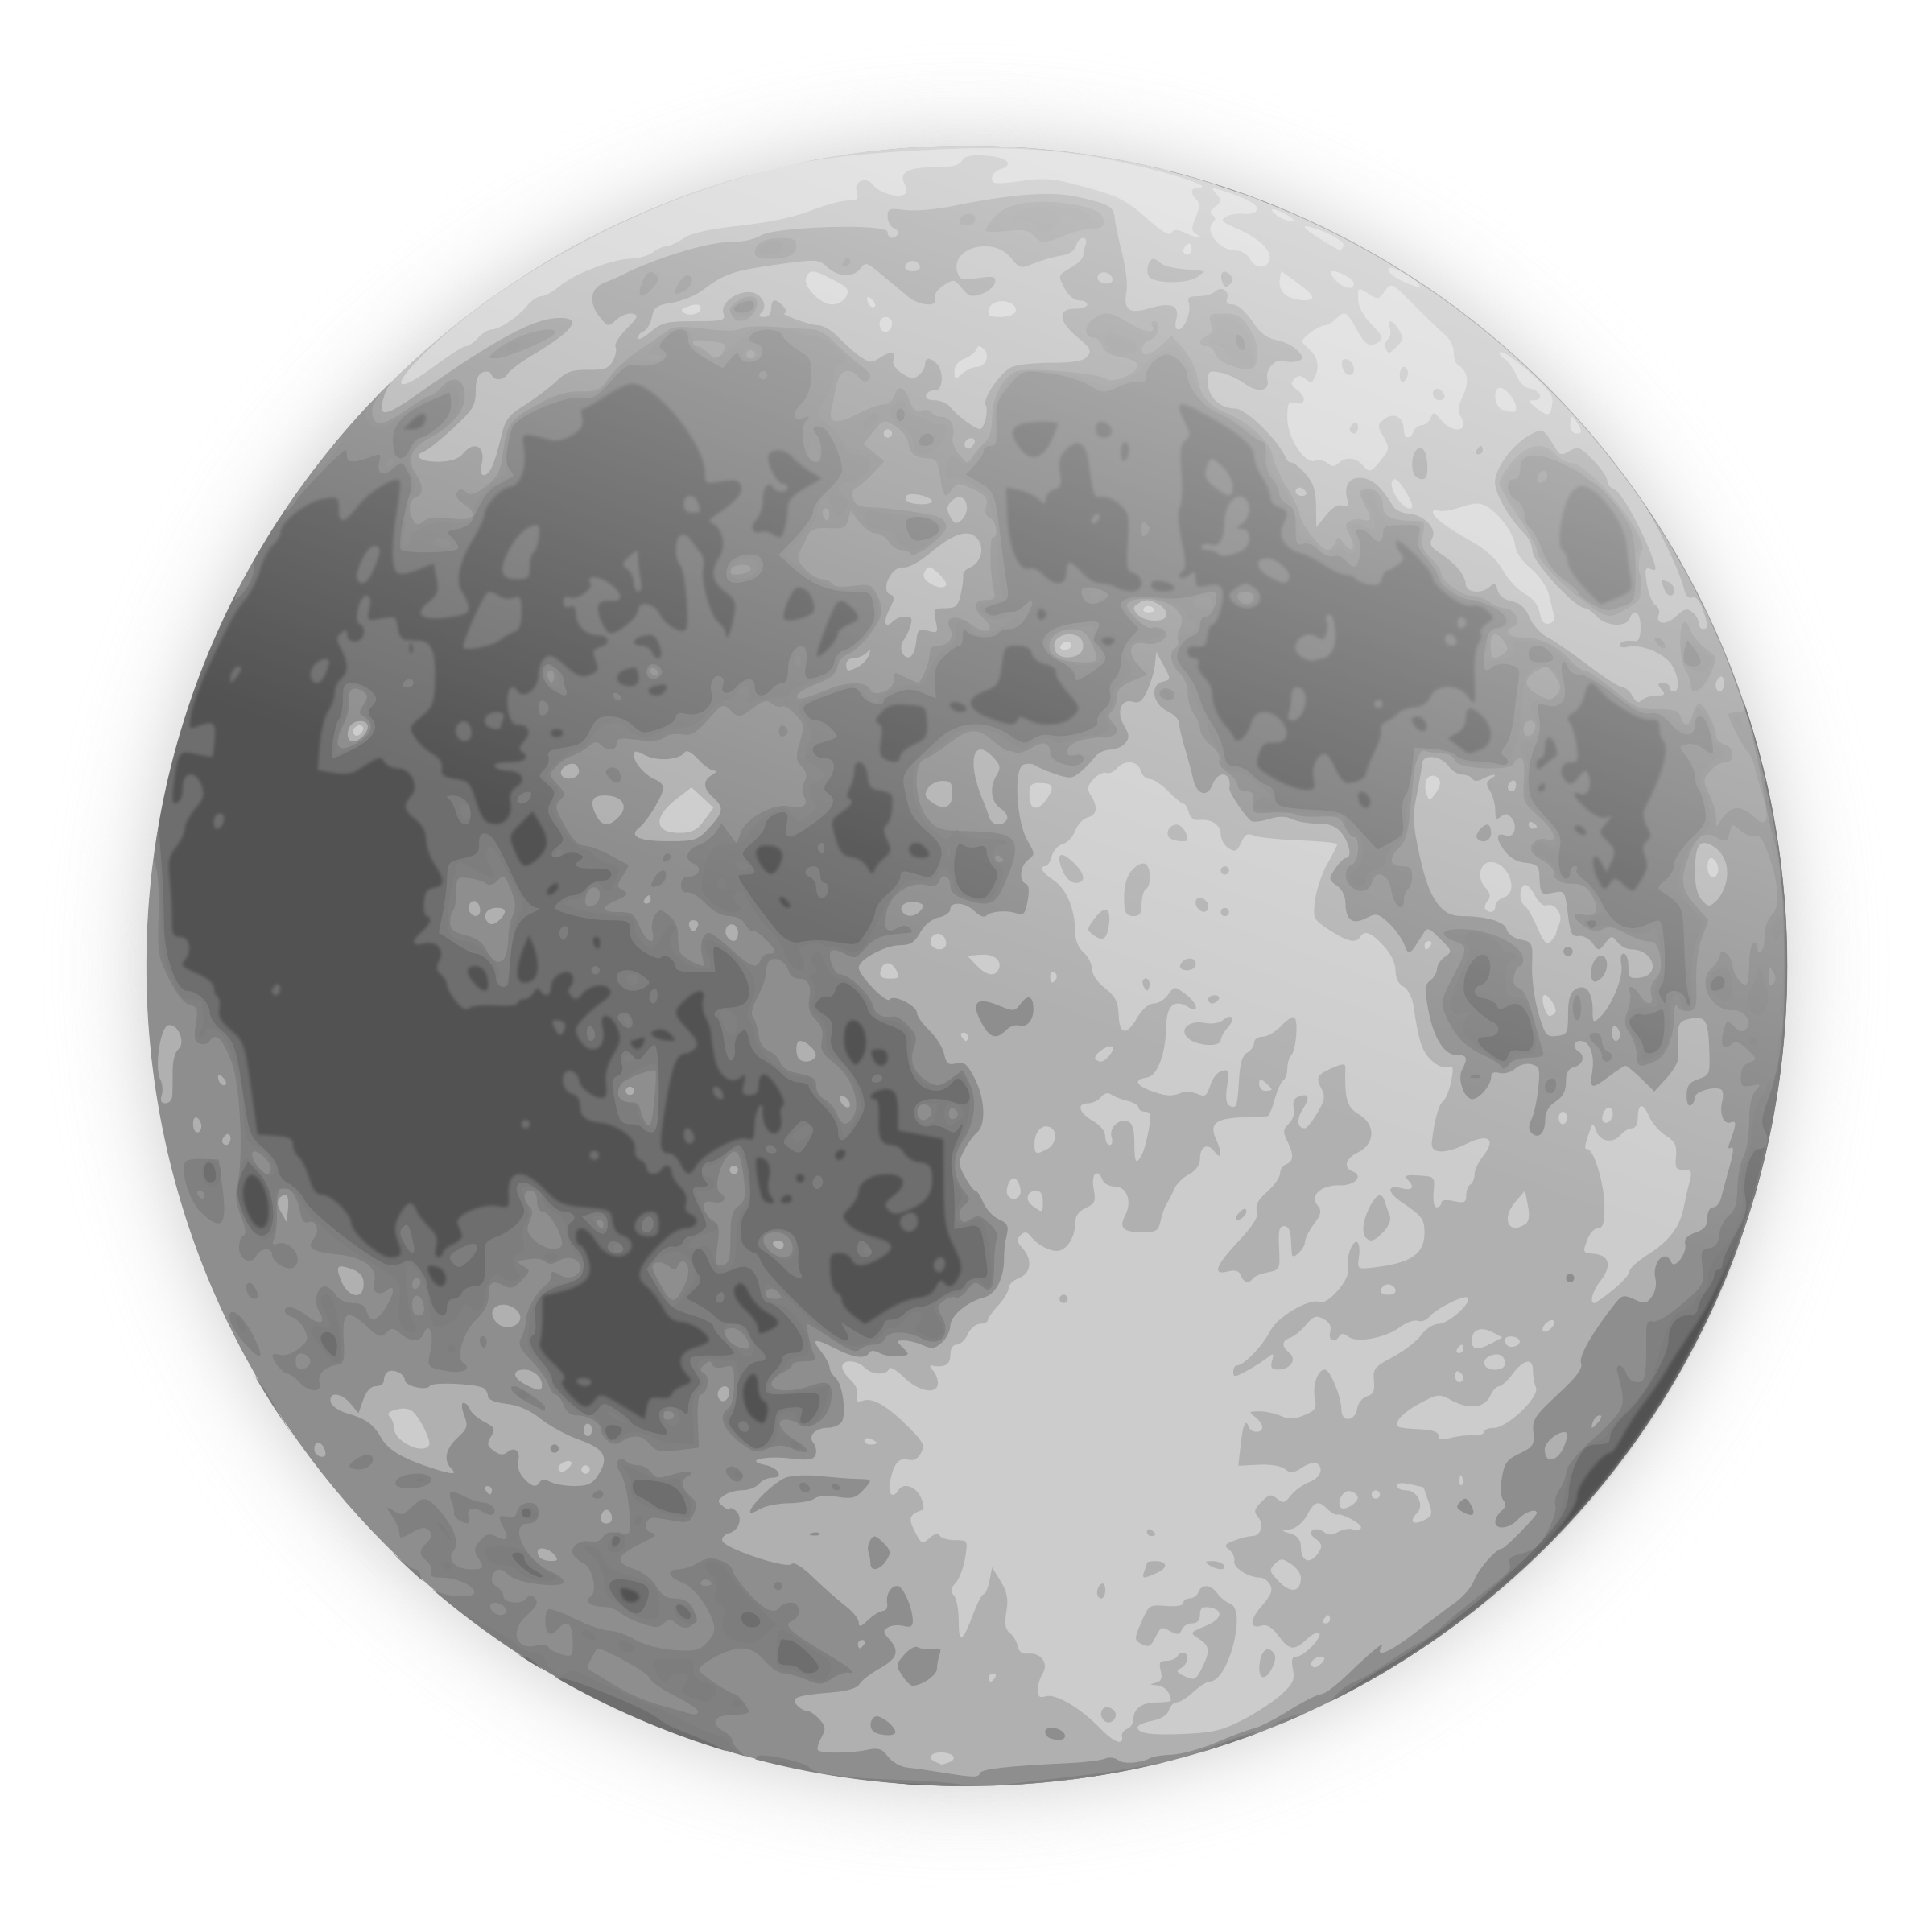 Moon clipart clear background #12